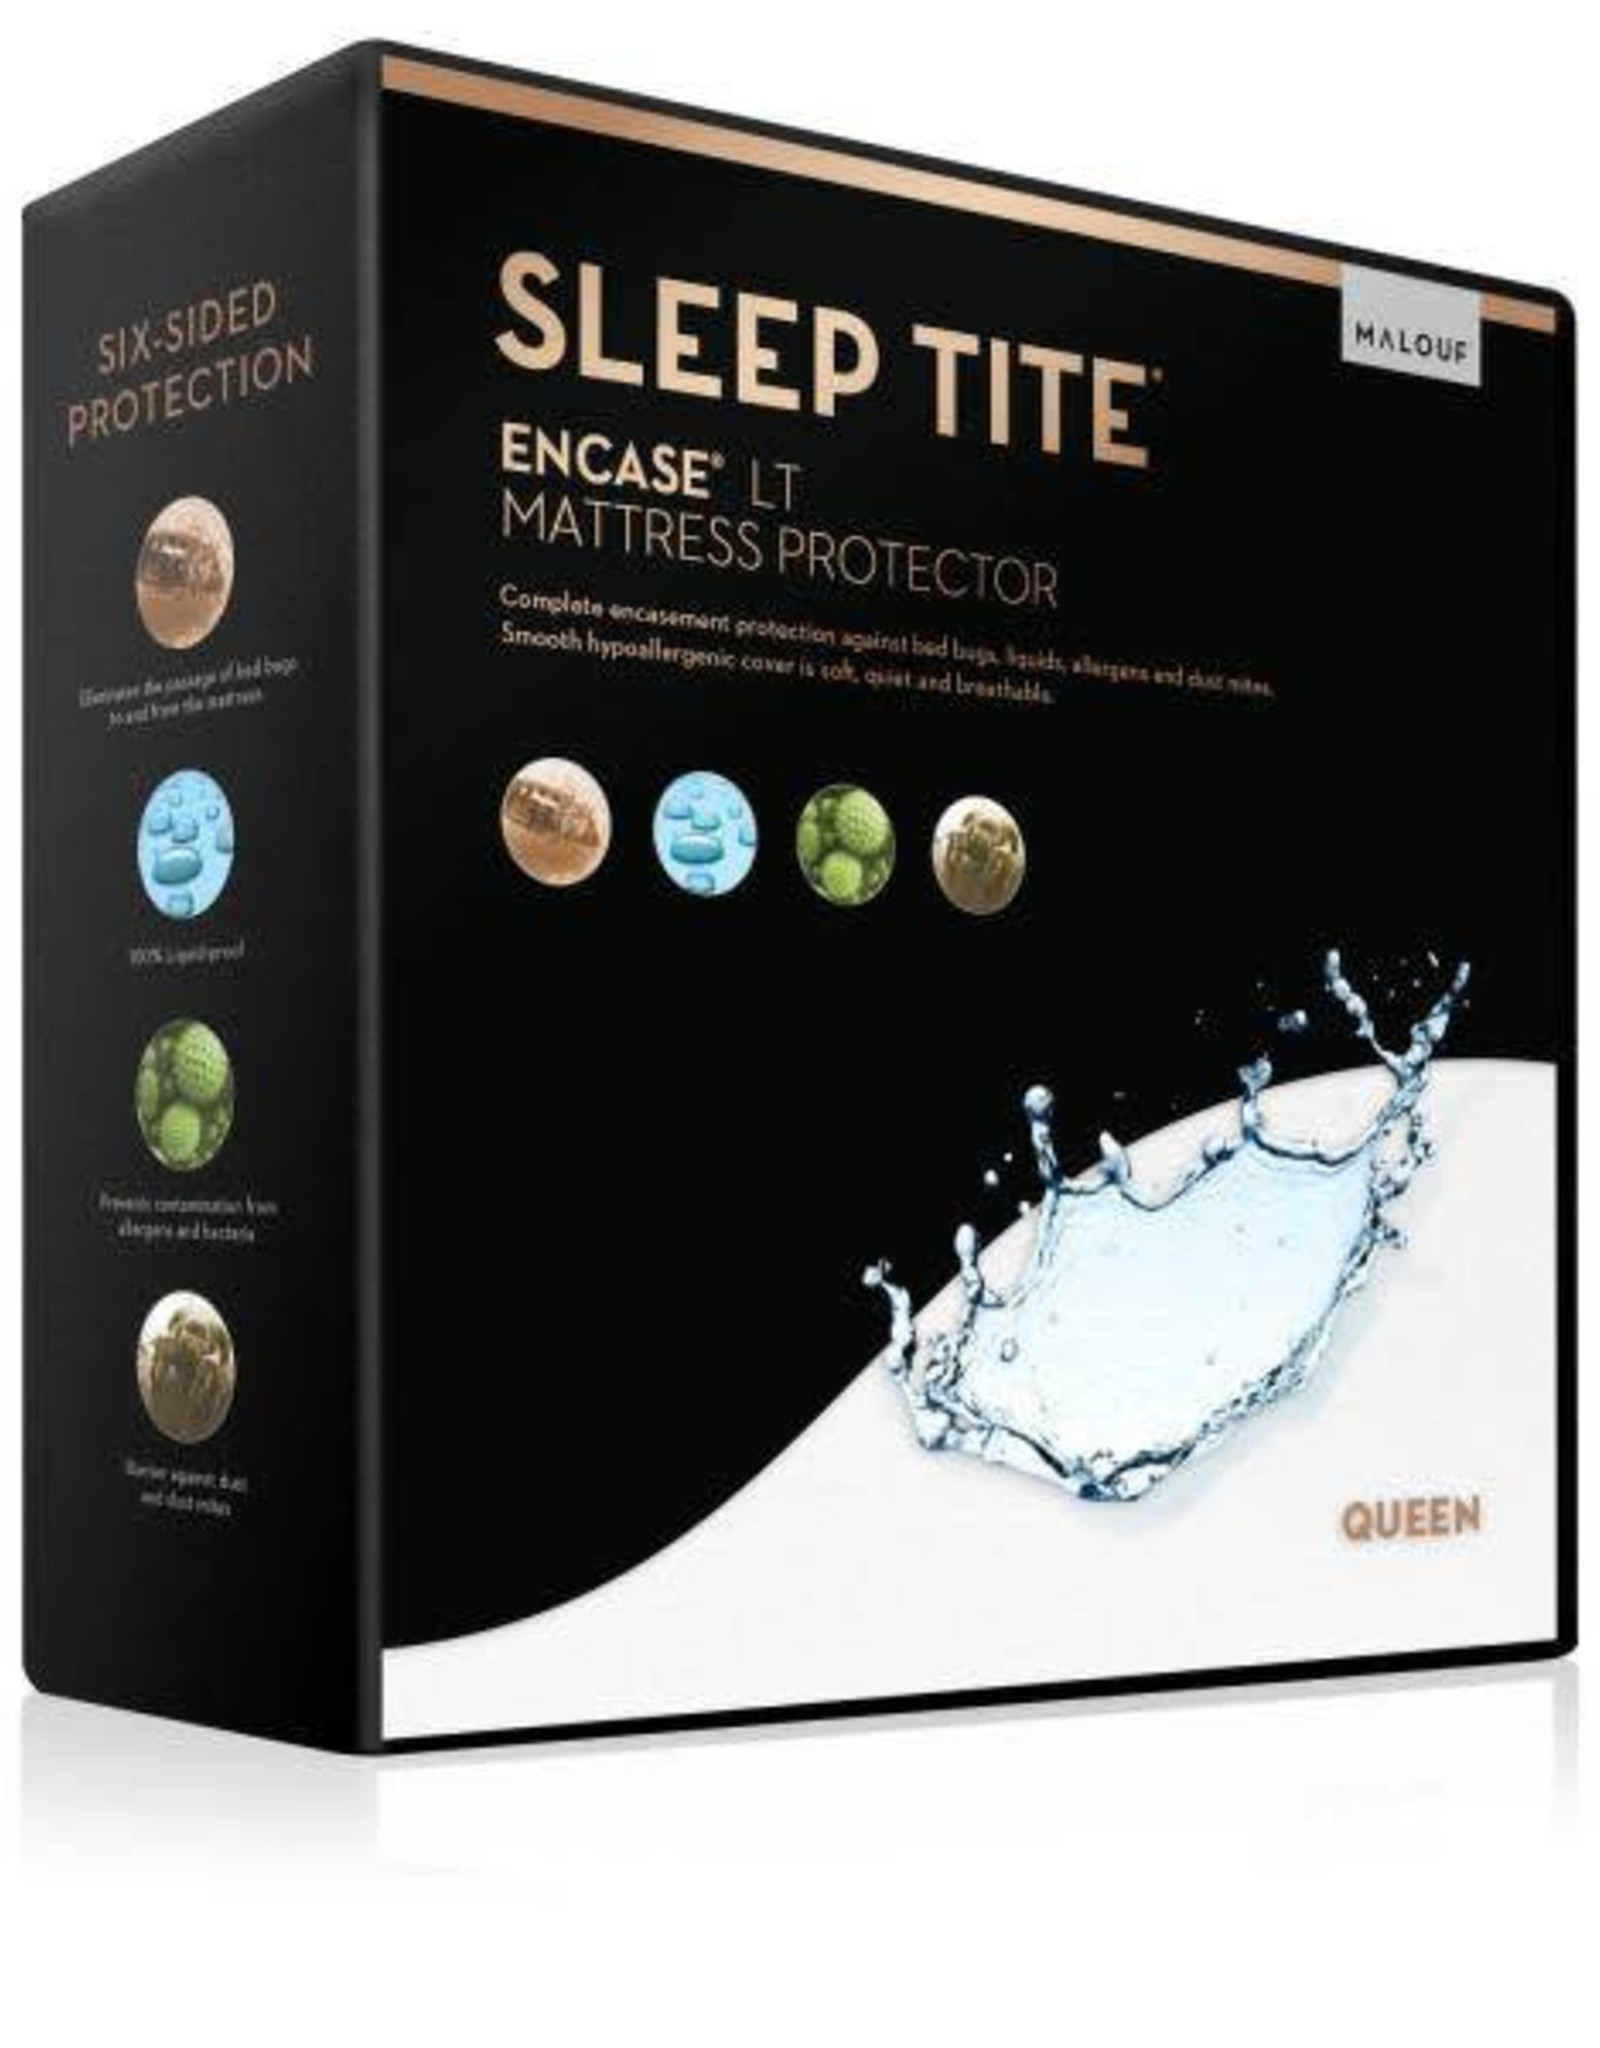 Malouf Sleep Tite Encased LT Mattress Protector - Queen Size